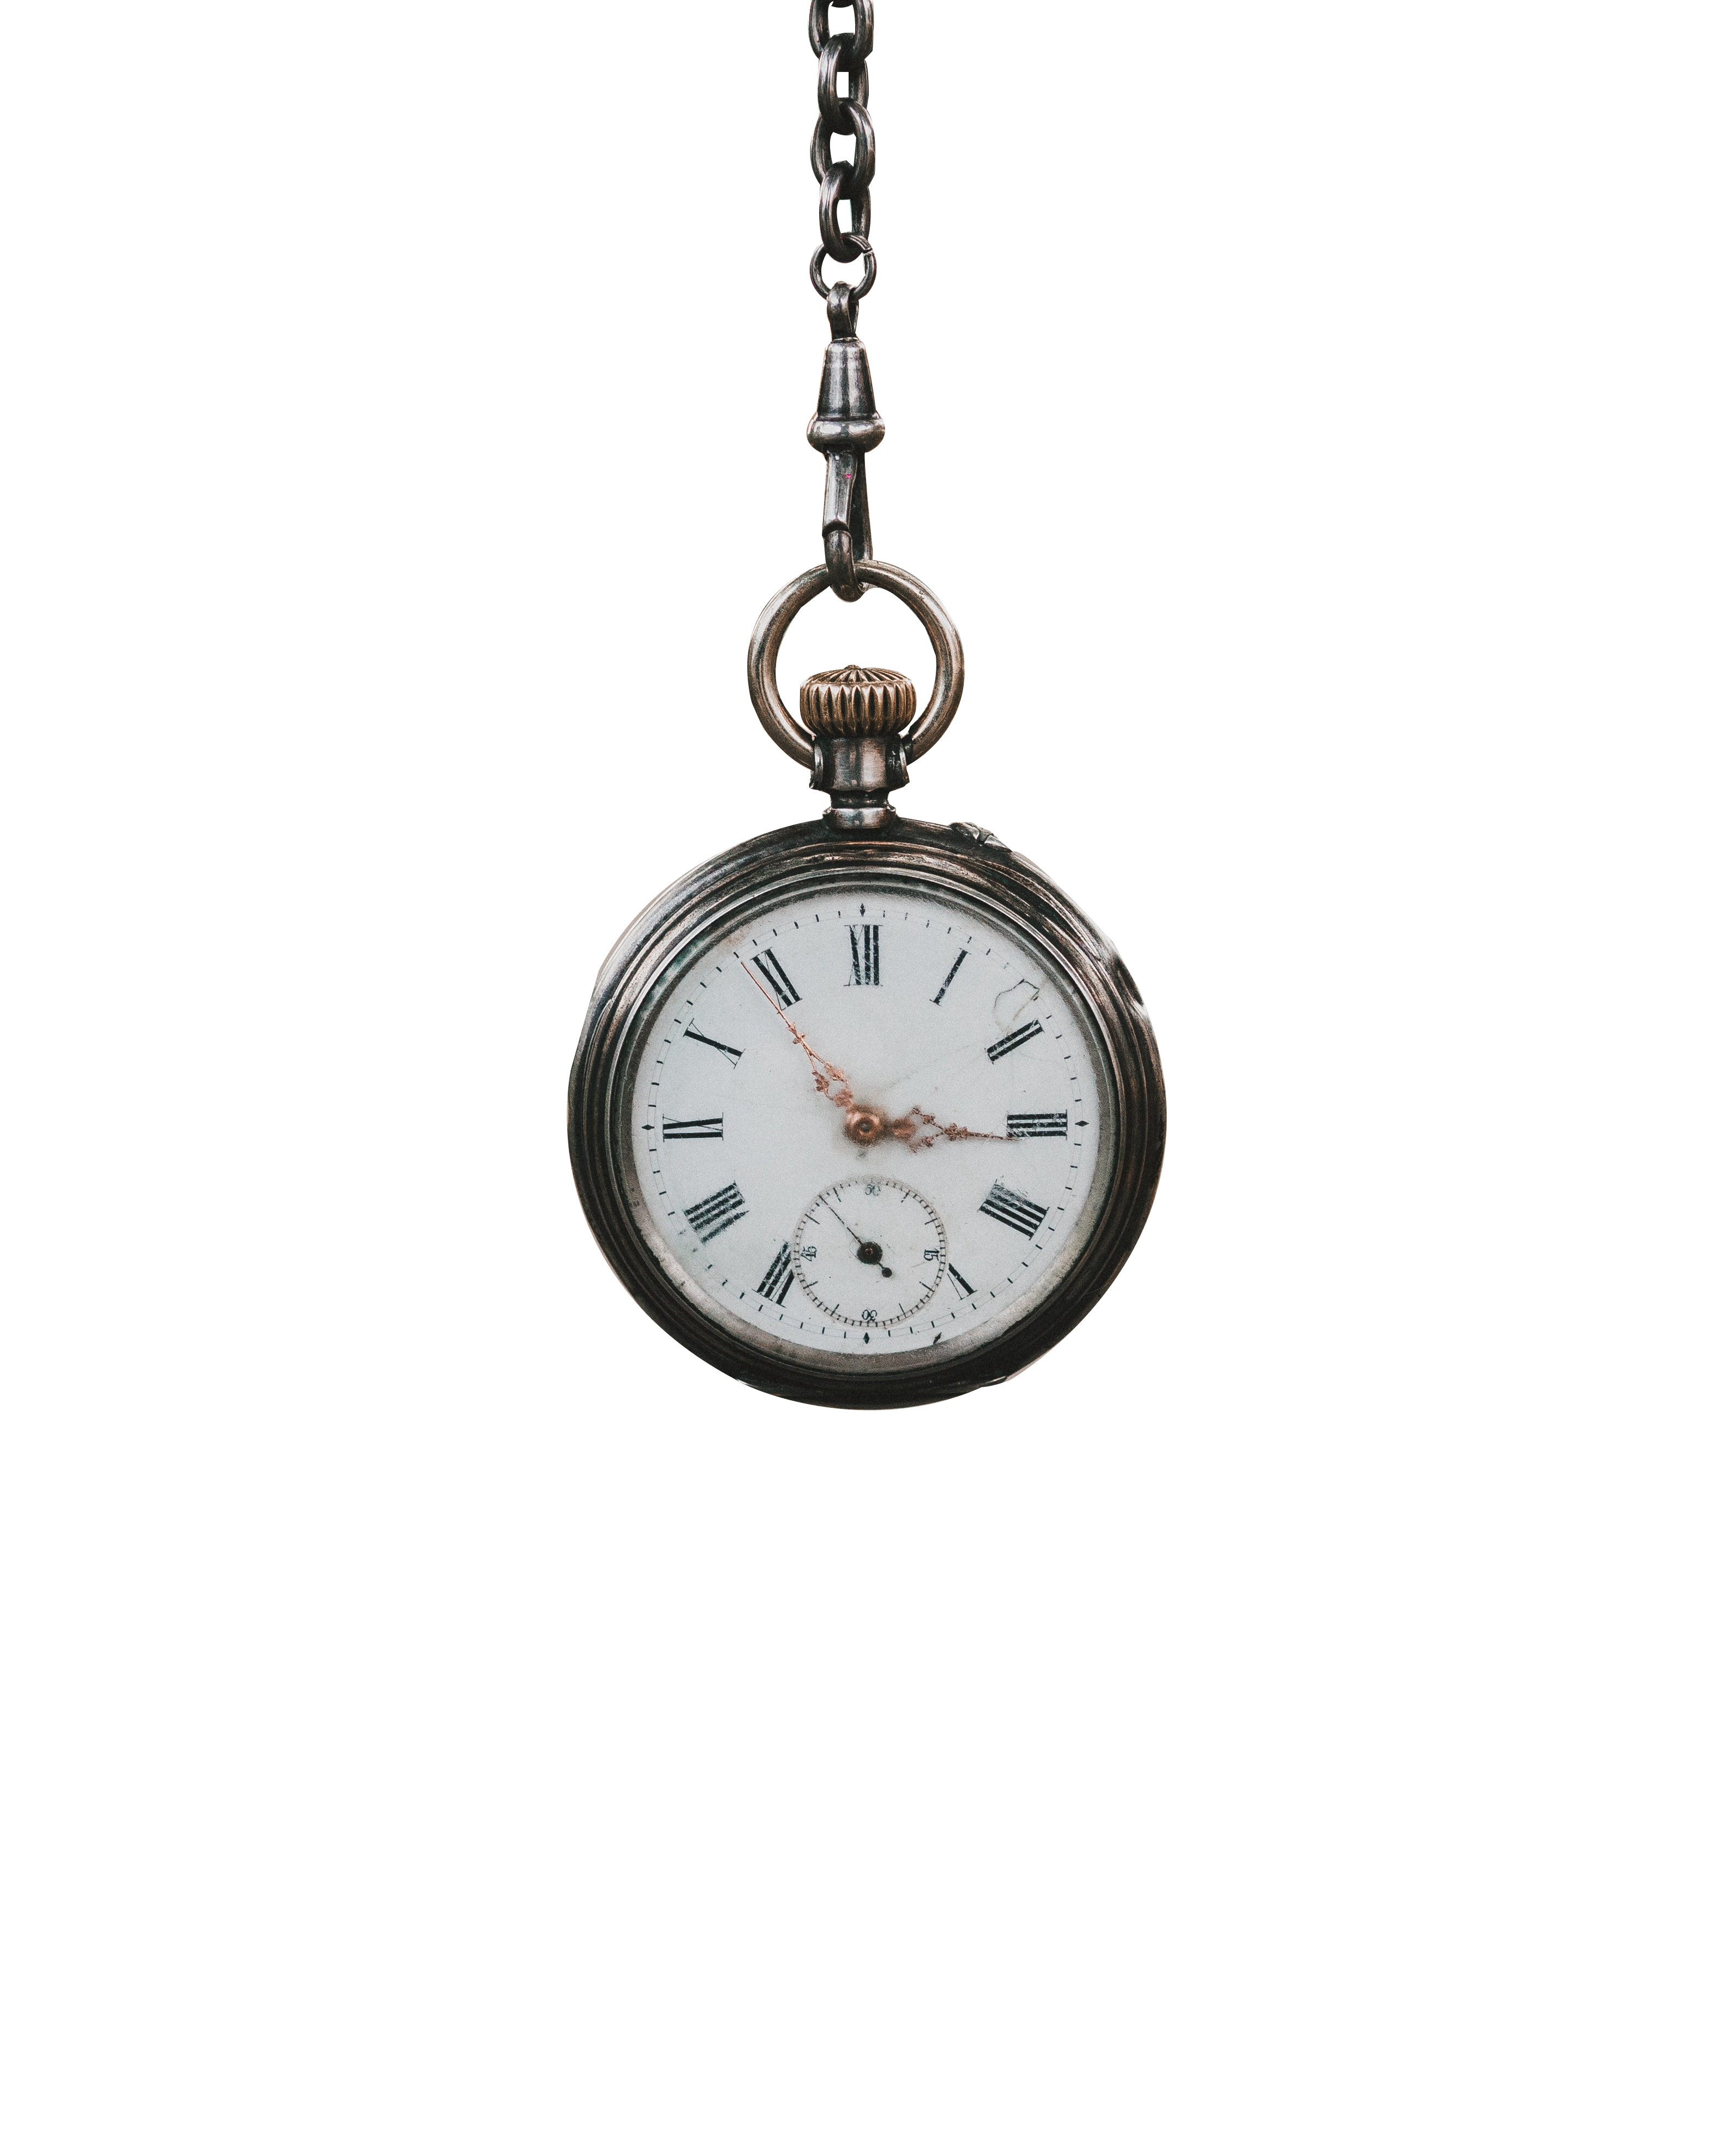 Round Little clock hanging with transparent background PNG